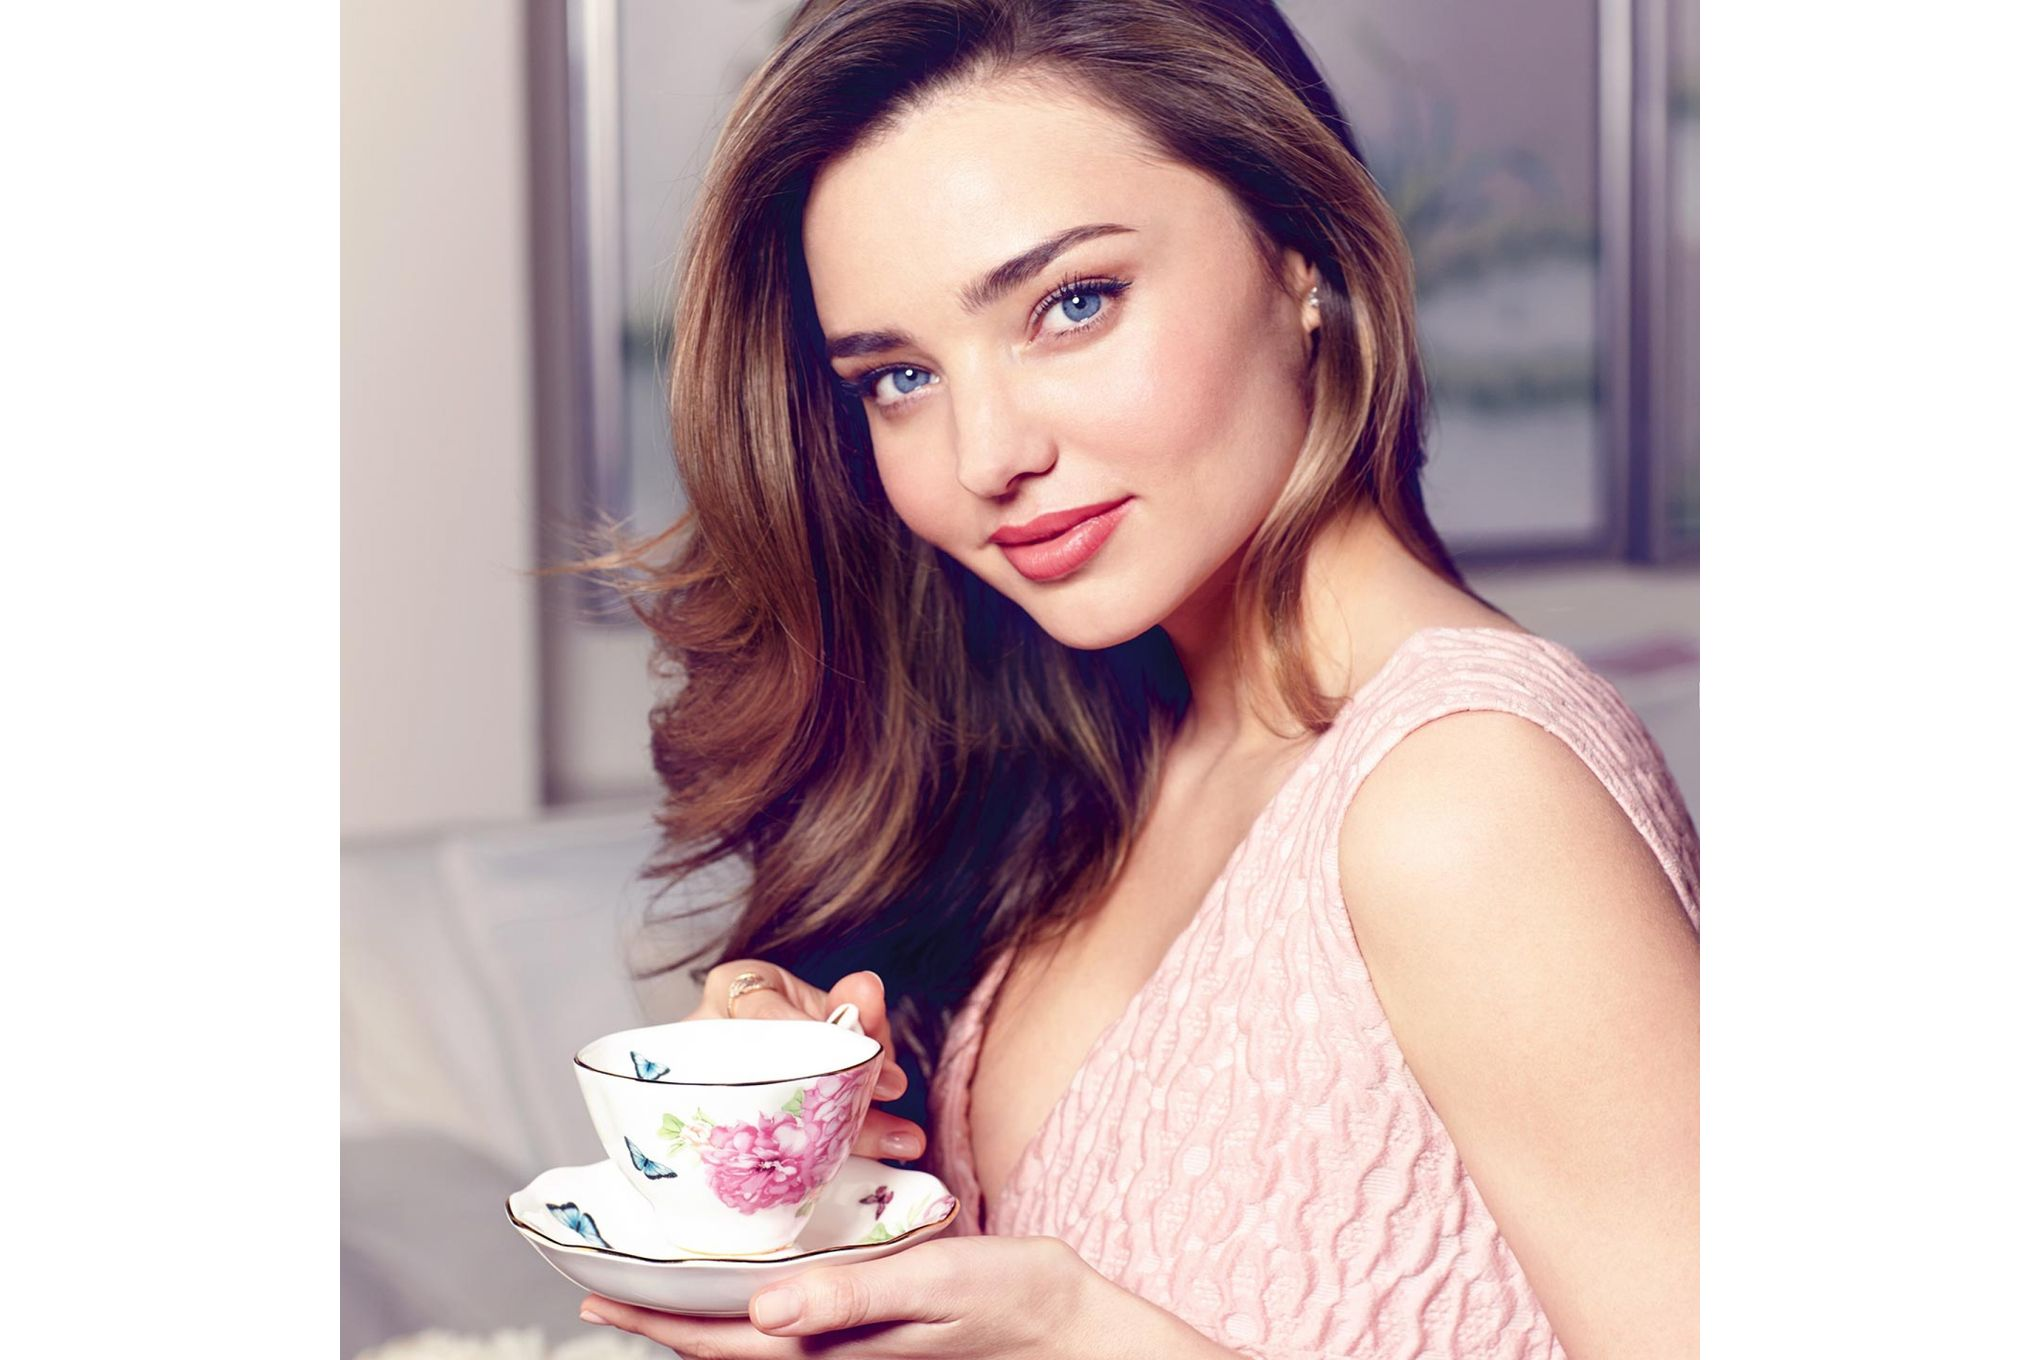 Miranda Kerr for Royal Albert Friendship 3 Piece Set Teacup, Saucer, Plate 20cm Friendship thumb 3